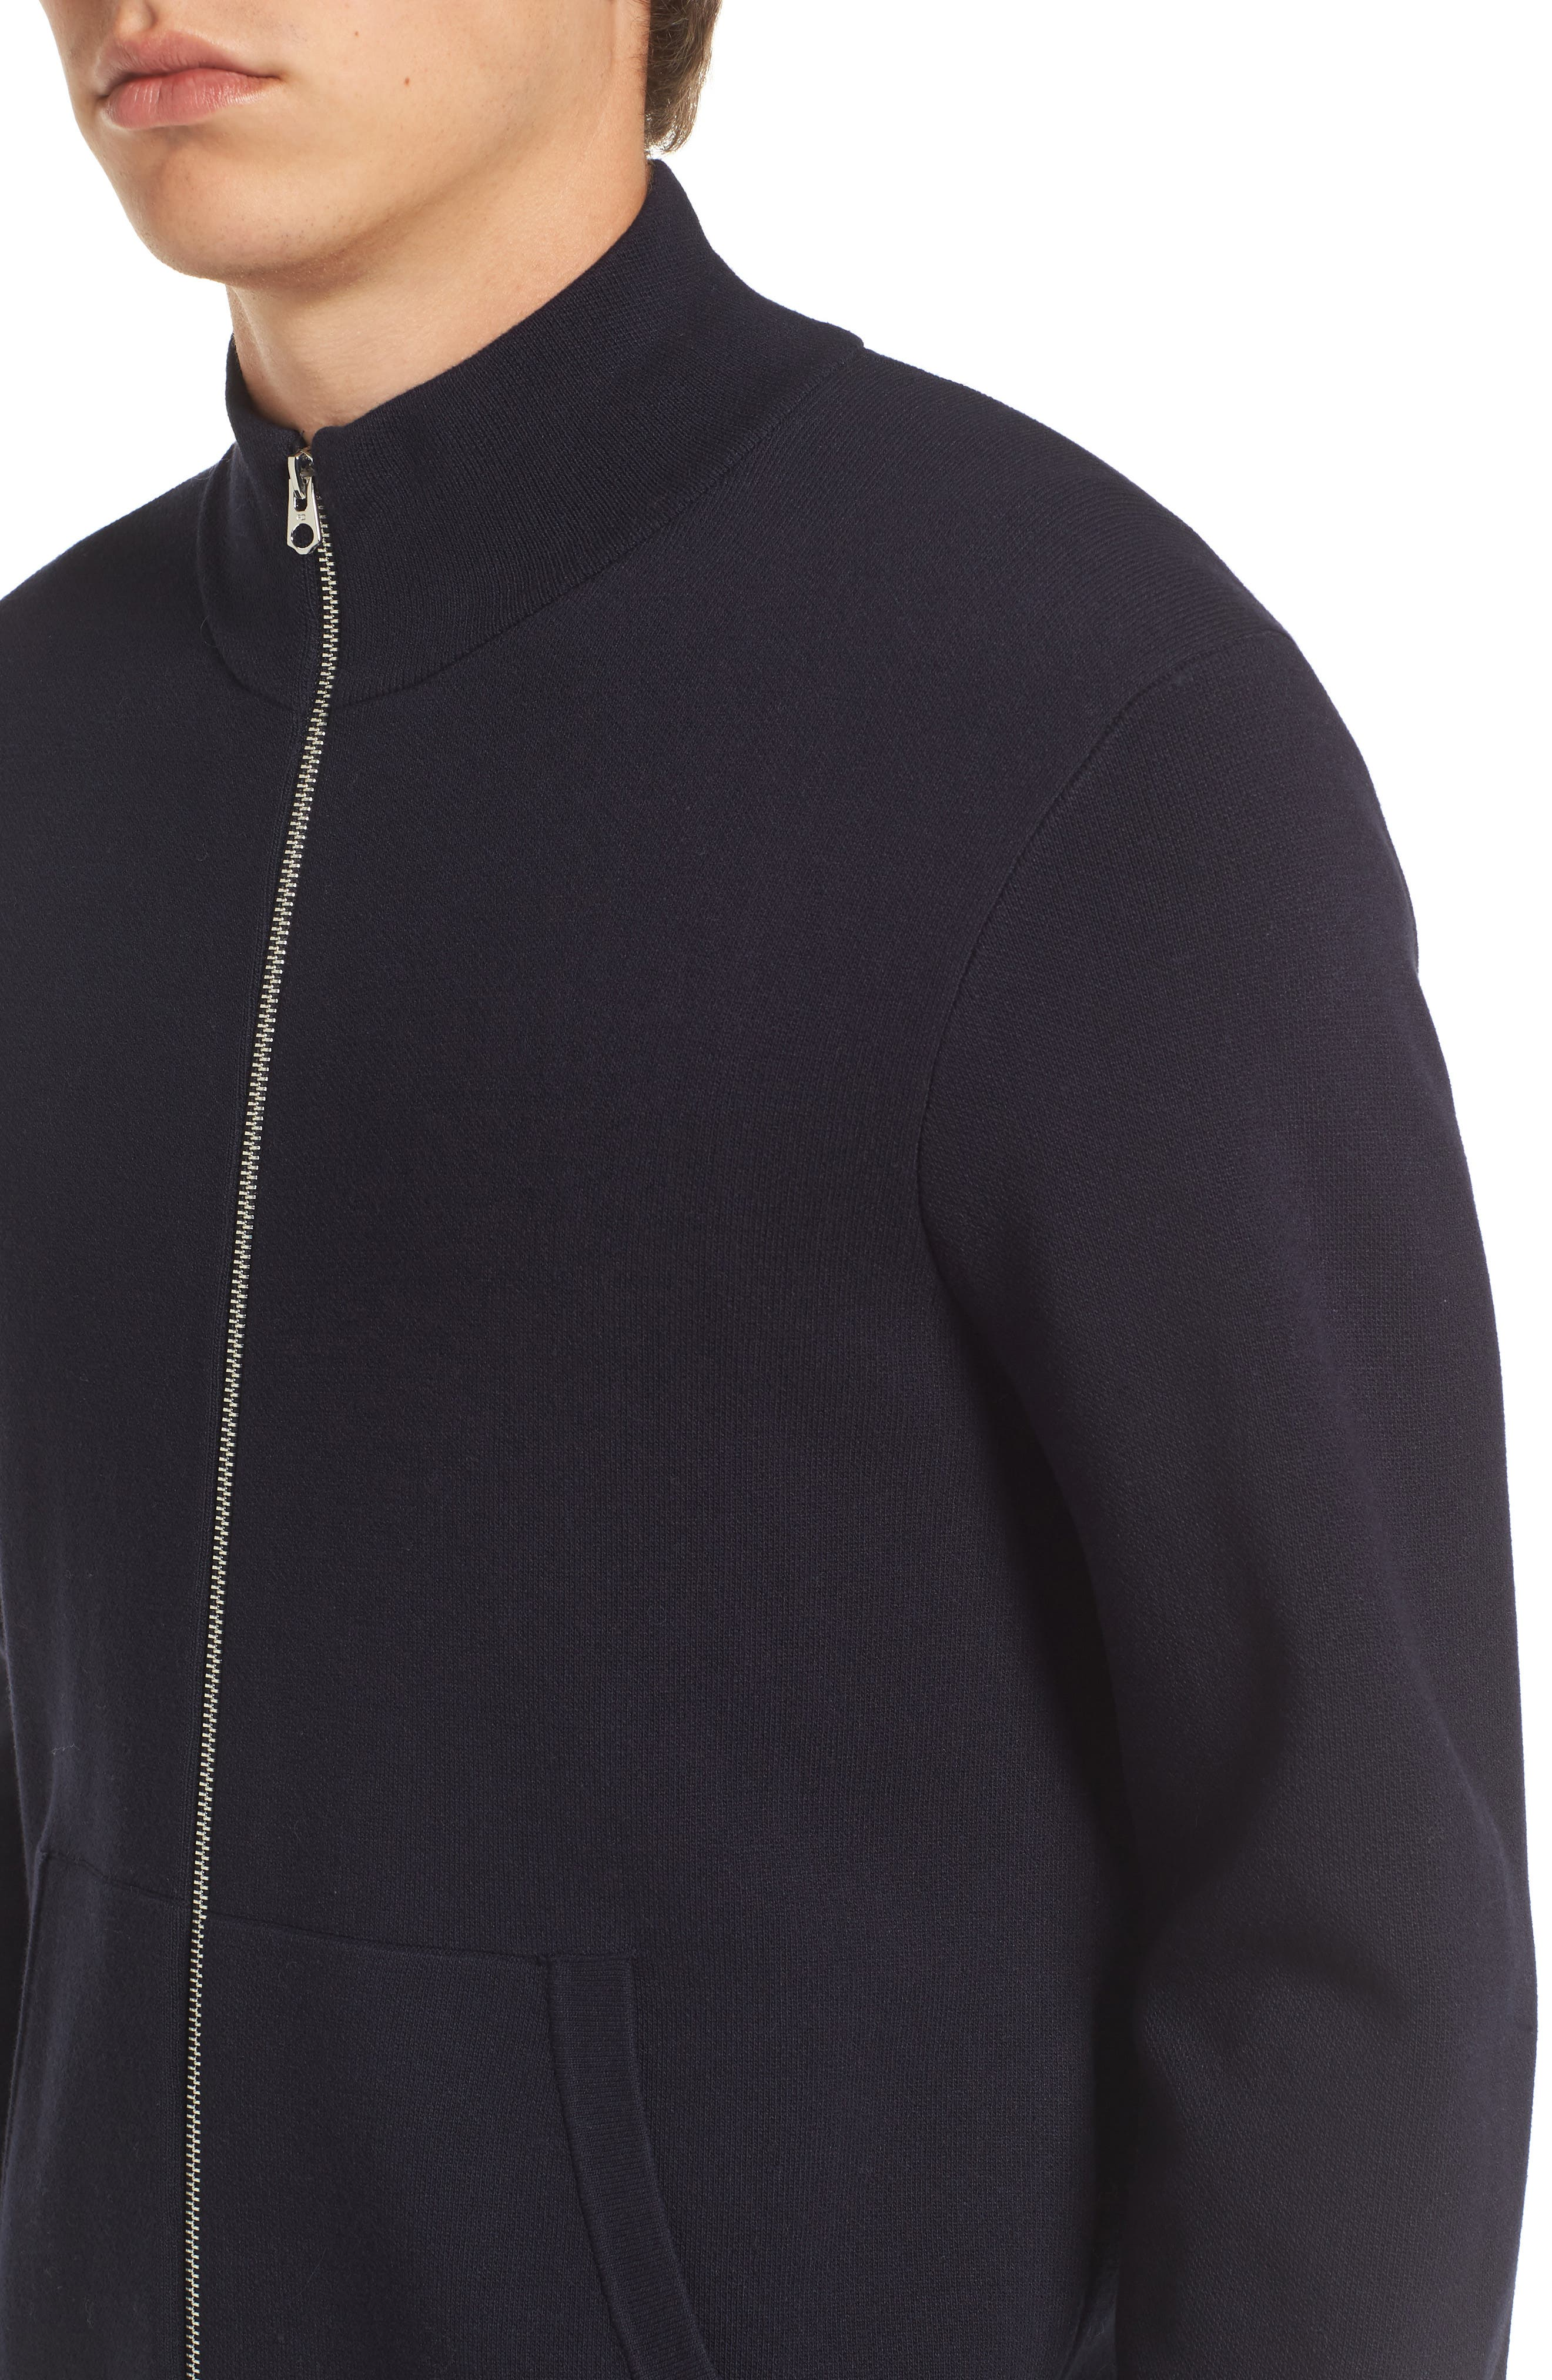 Lakra Zip-Up Sweater,                             Alternate thumbnail 4, color,                             Marine Blue